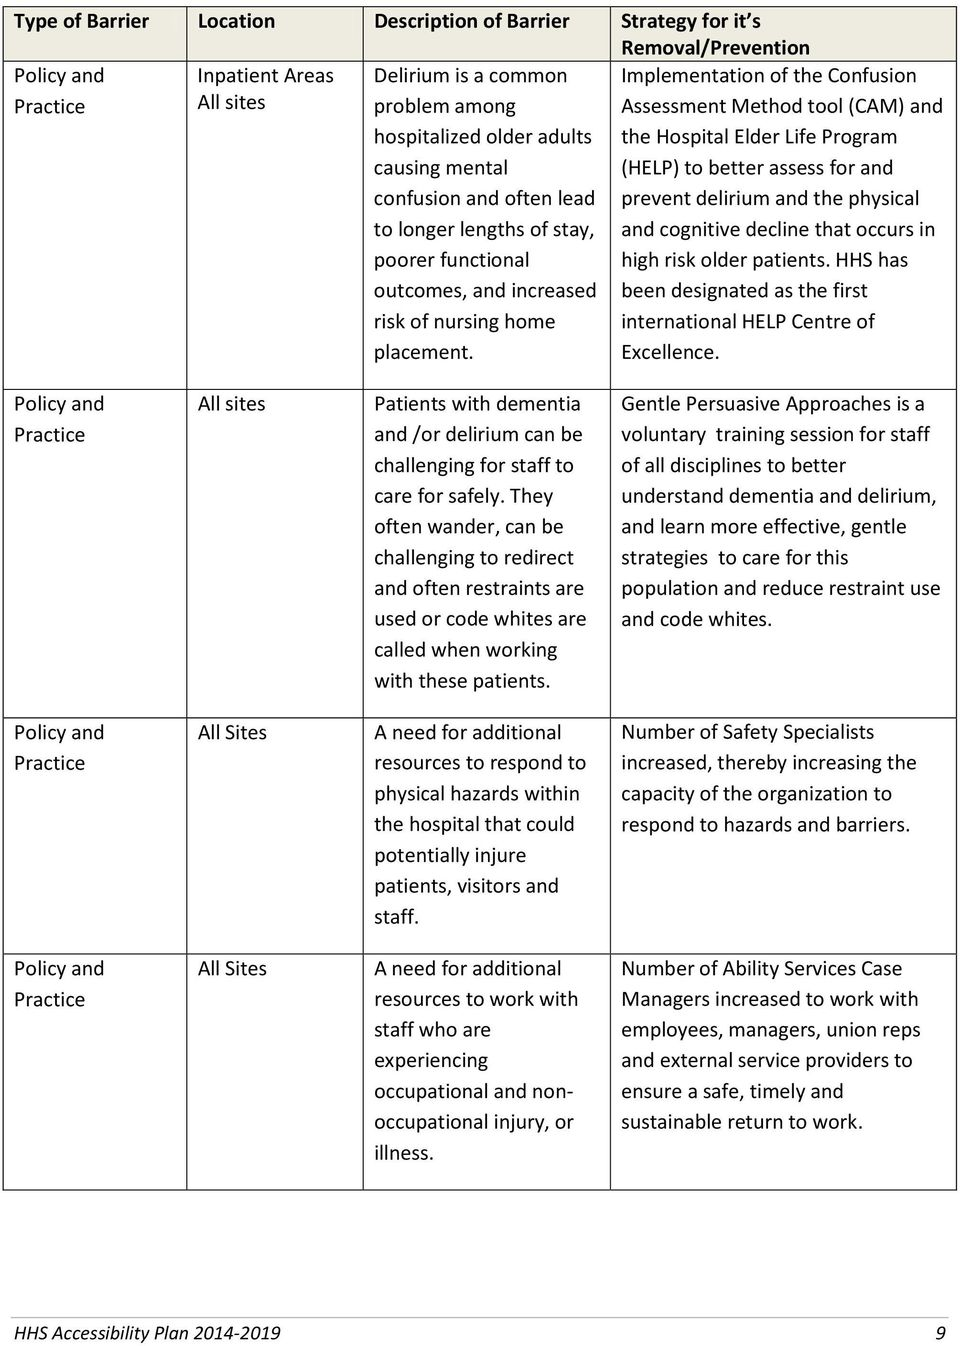 Implementation of the Confusion Assessment Method tool (CAM) and the Hospital Elder Life Program (HELP) to better assess for and prevent delirium and the physical and cognitive decline that occurs in